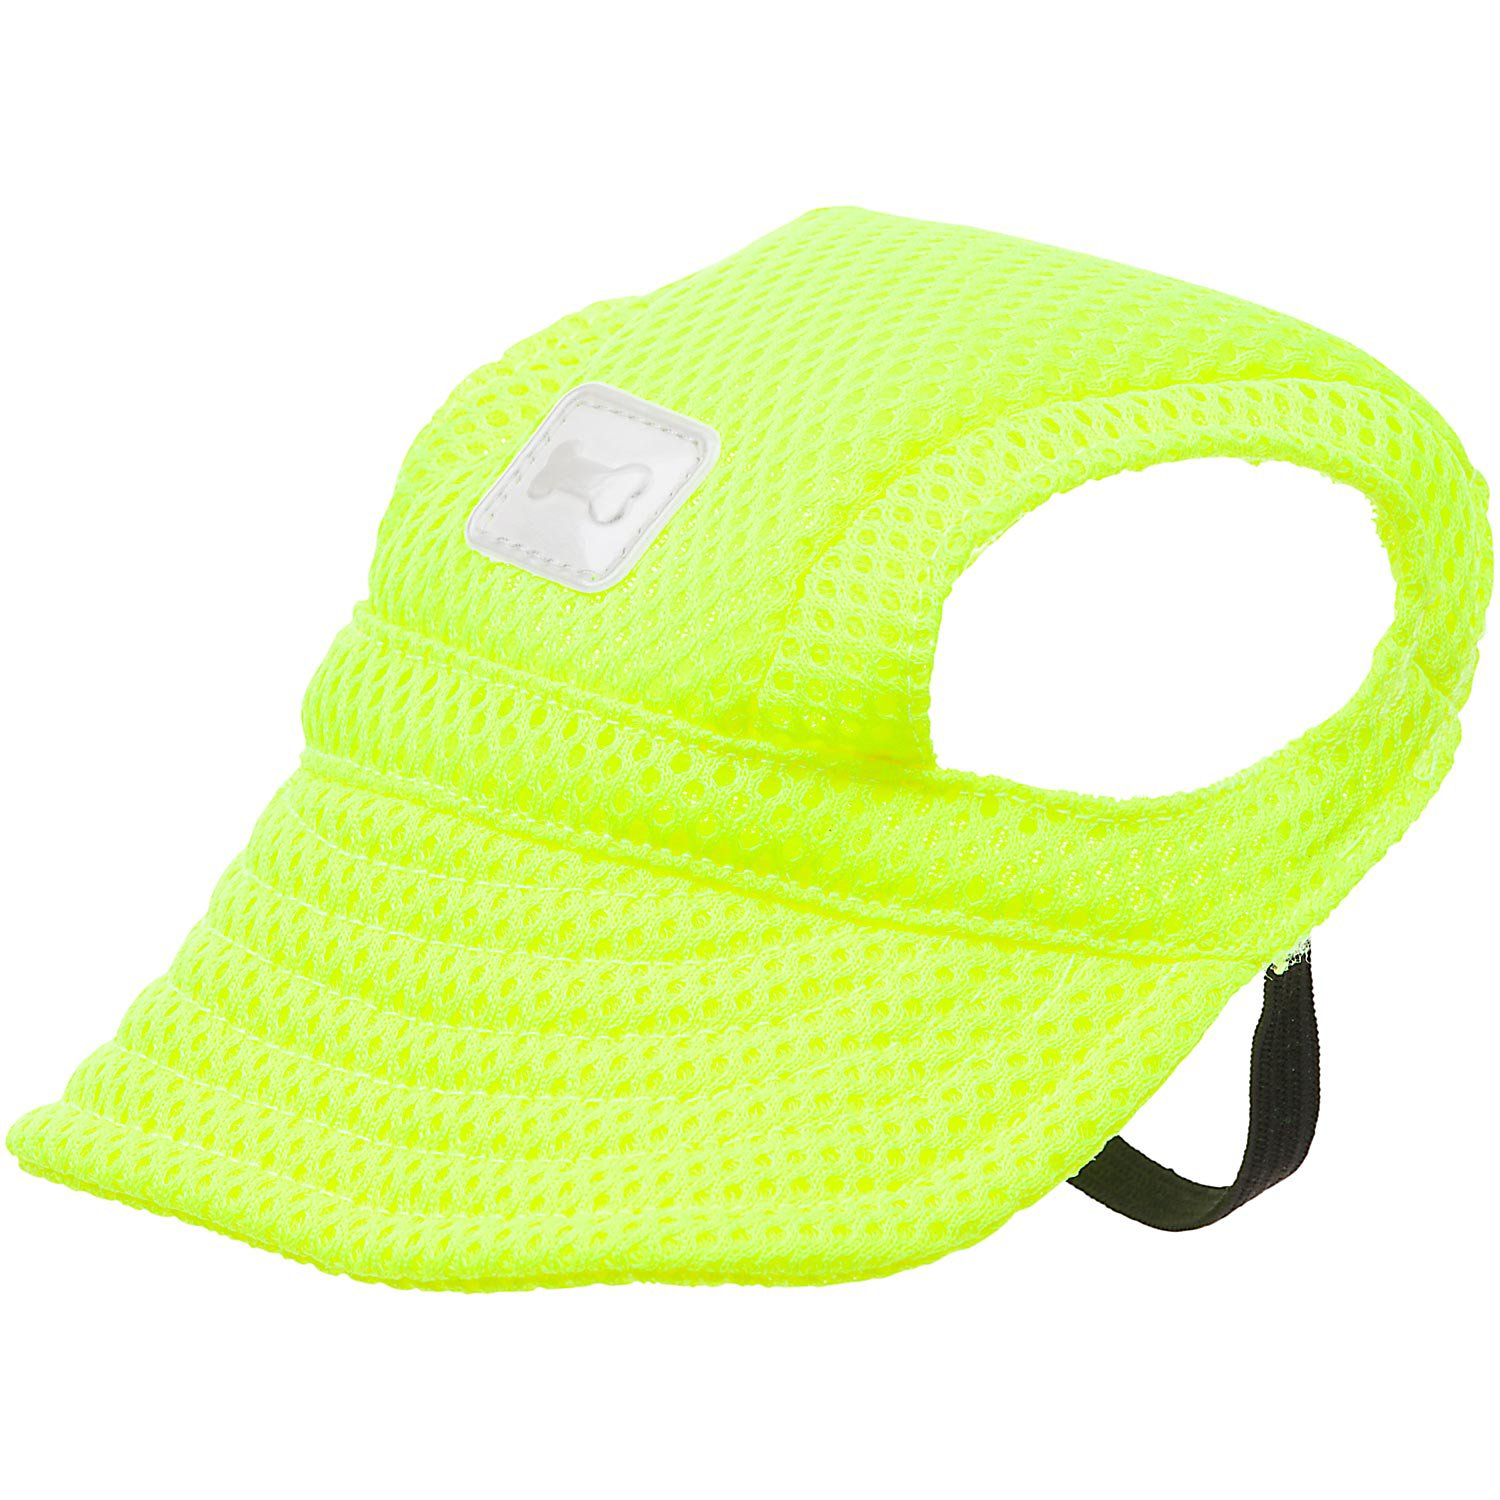 Wag-A-Tude Yellow Reflective Pet Hat